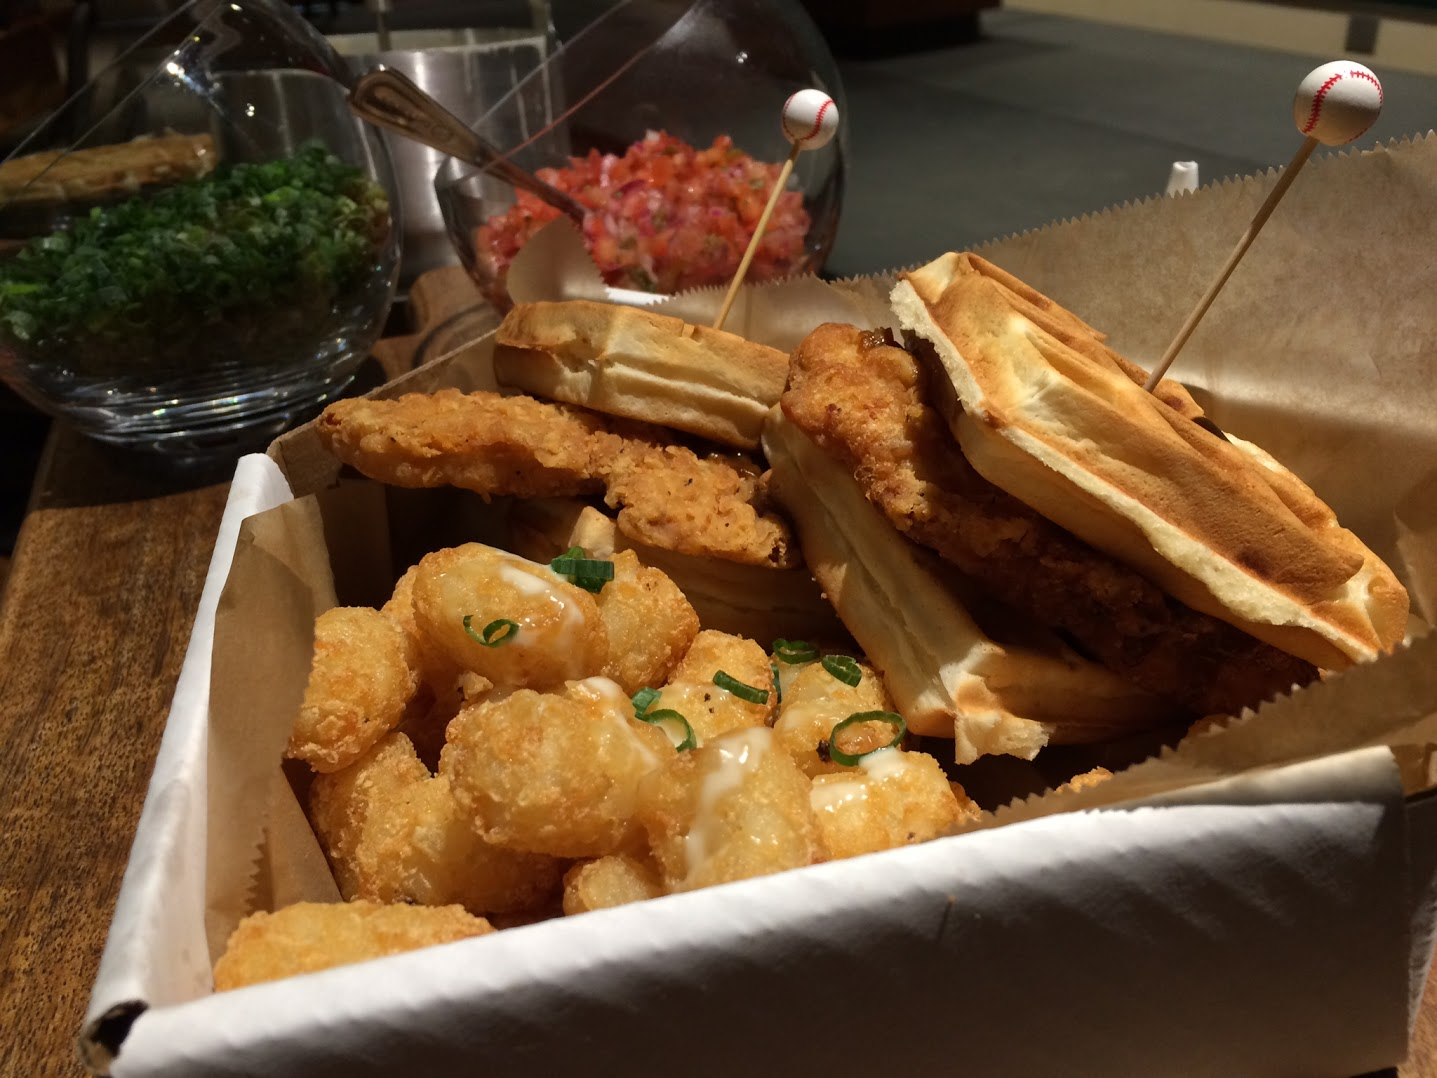 Waffle sandwich in home plate box served with tater tots at Busch Stadium in St. Louis (Photo: St. Louis Cardinals).